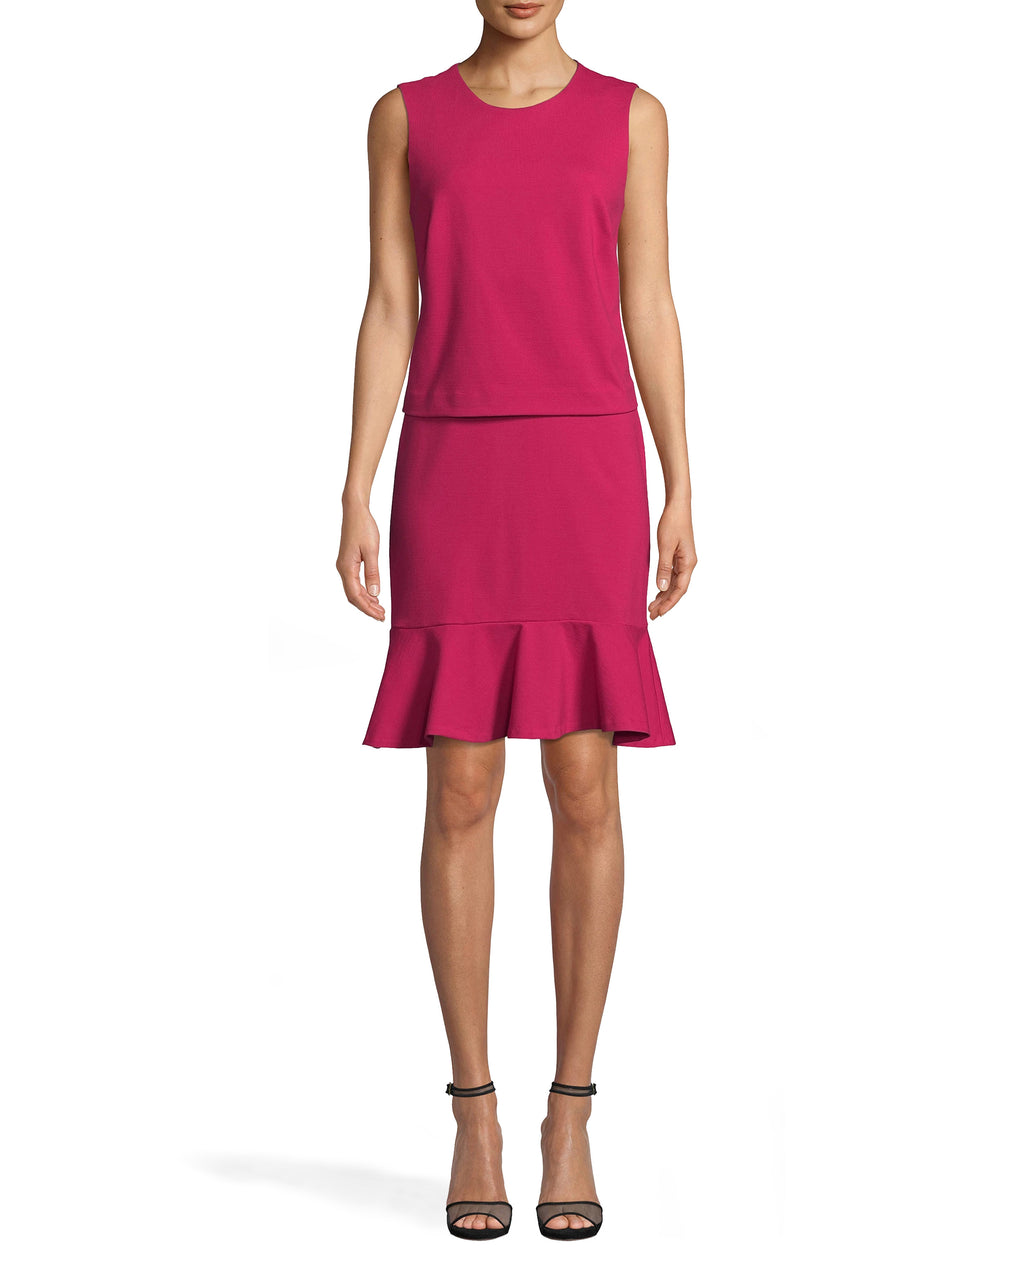 BH20127 - Ponte Pop Over Dress - dresses - short - FEATURING A HIGH NECKLINE AND A KNEE LENGTH HEMLINE, THIS DRESS WILL BE YOUR NEW OFFICE GO TO. A FLARED SKIRT AND LAYERED TOP UPDATES THIS CLASSIC STYLE. KEYHOLE CUTOUT WITH BUTTON FOR CLOSURE.